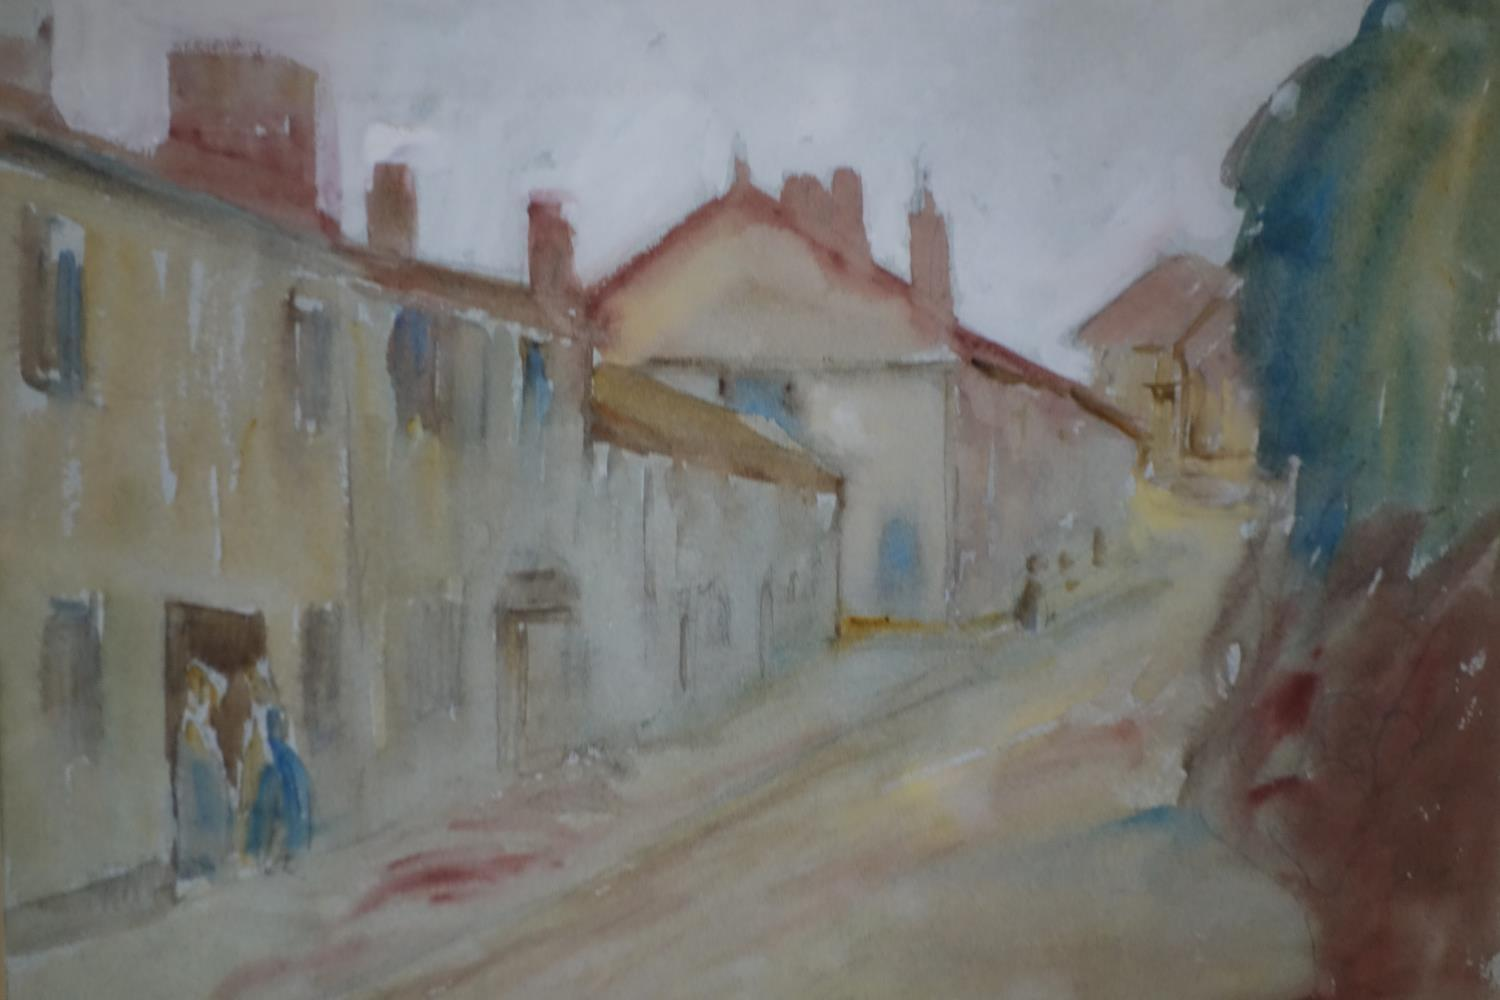 Lot 693 - Marcus Arthur Boss (1891-1981), 'A Country Lane', watercolour, monogrammed and dated 1923 to lower